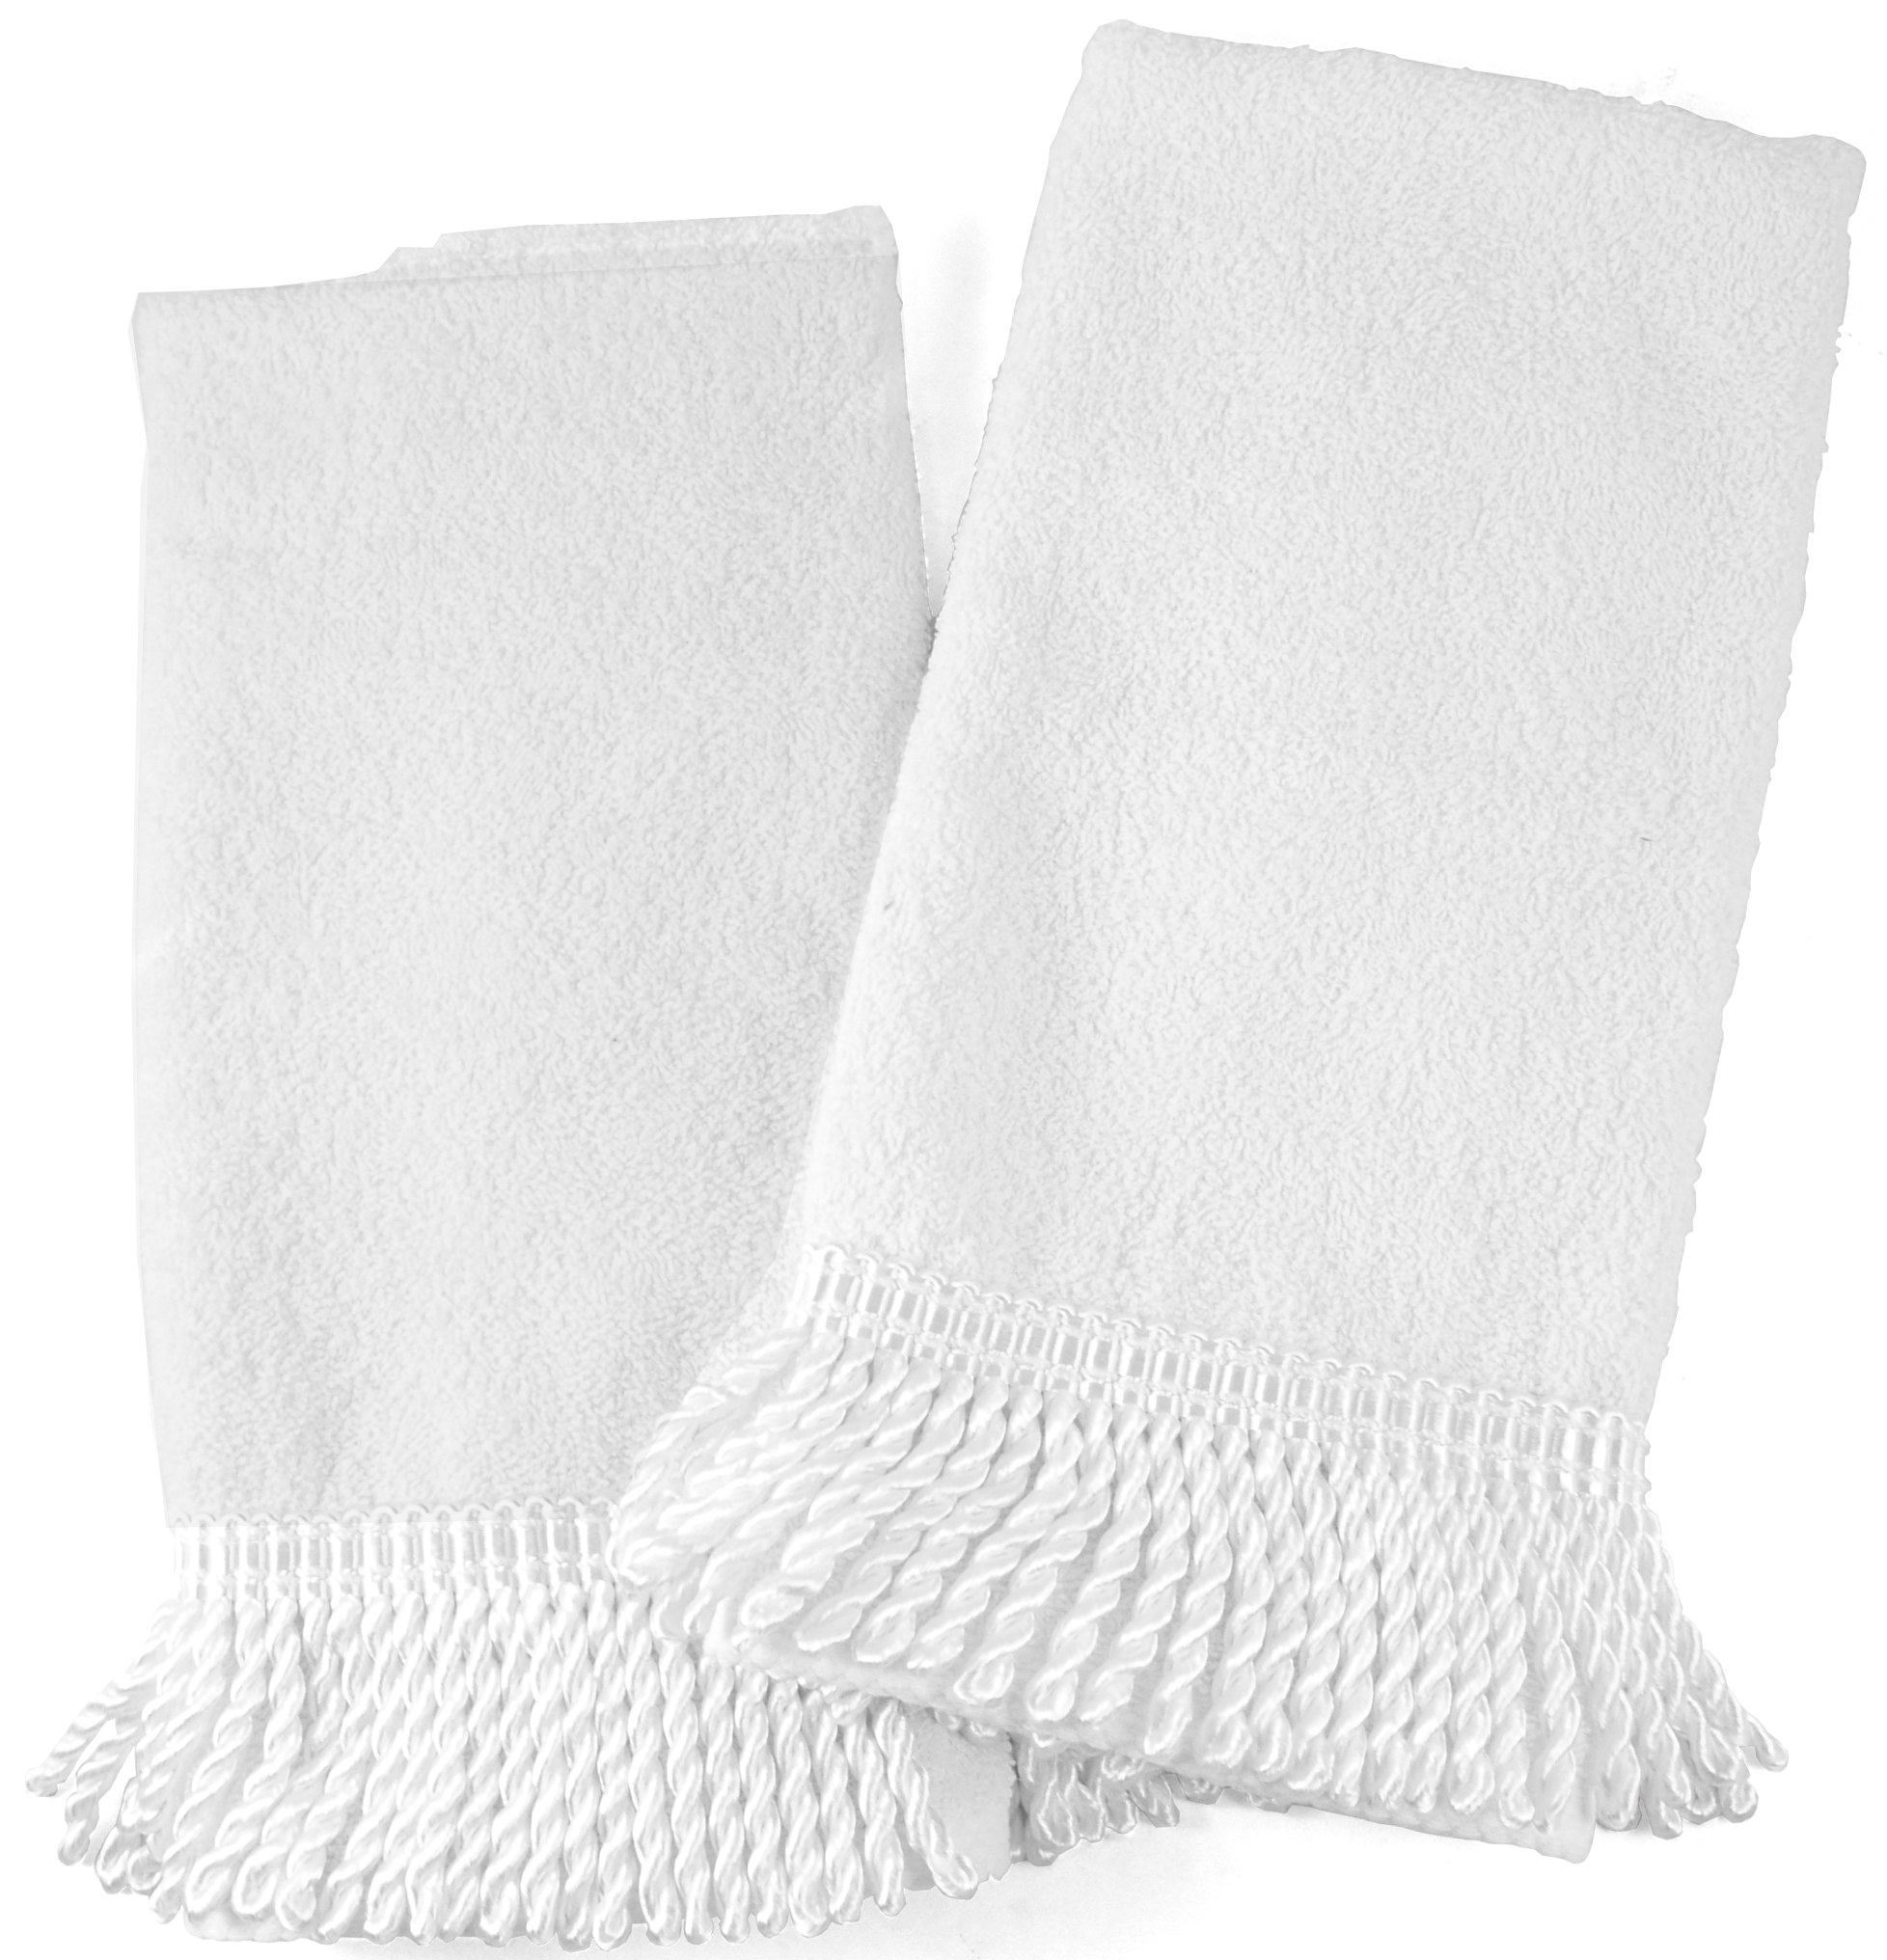 White Cotton Hand Towel With White Tassel Trim Set Of 2